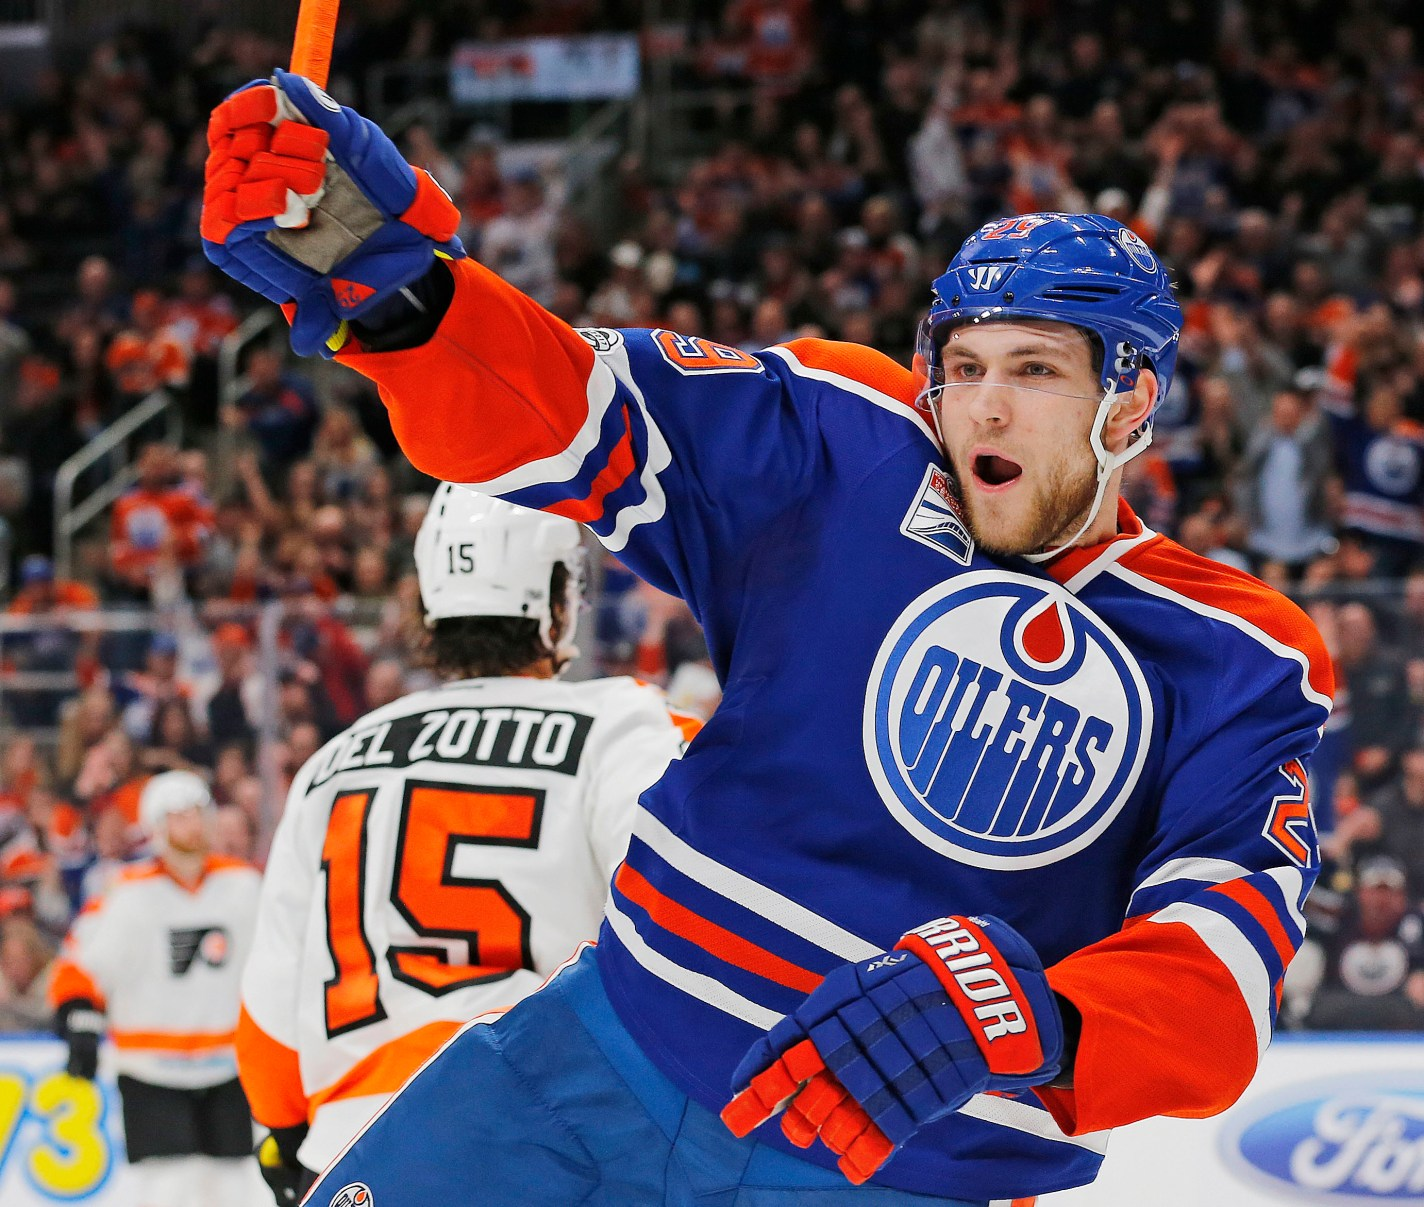 Leon Draisaitl Passes Marco Sturm For The Highest Single Season Points Total